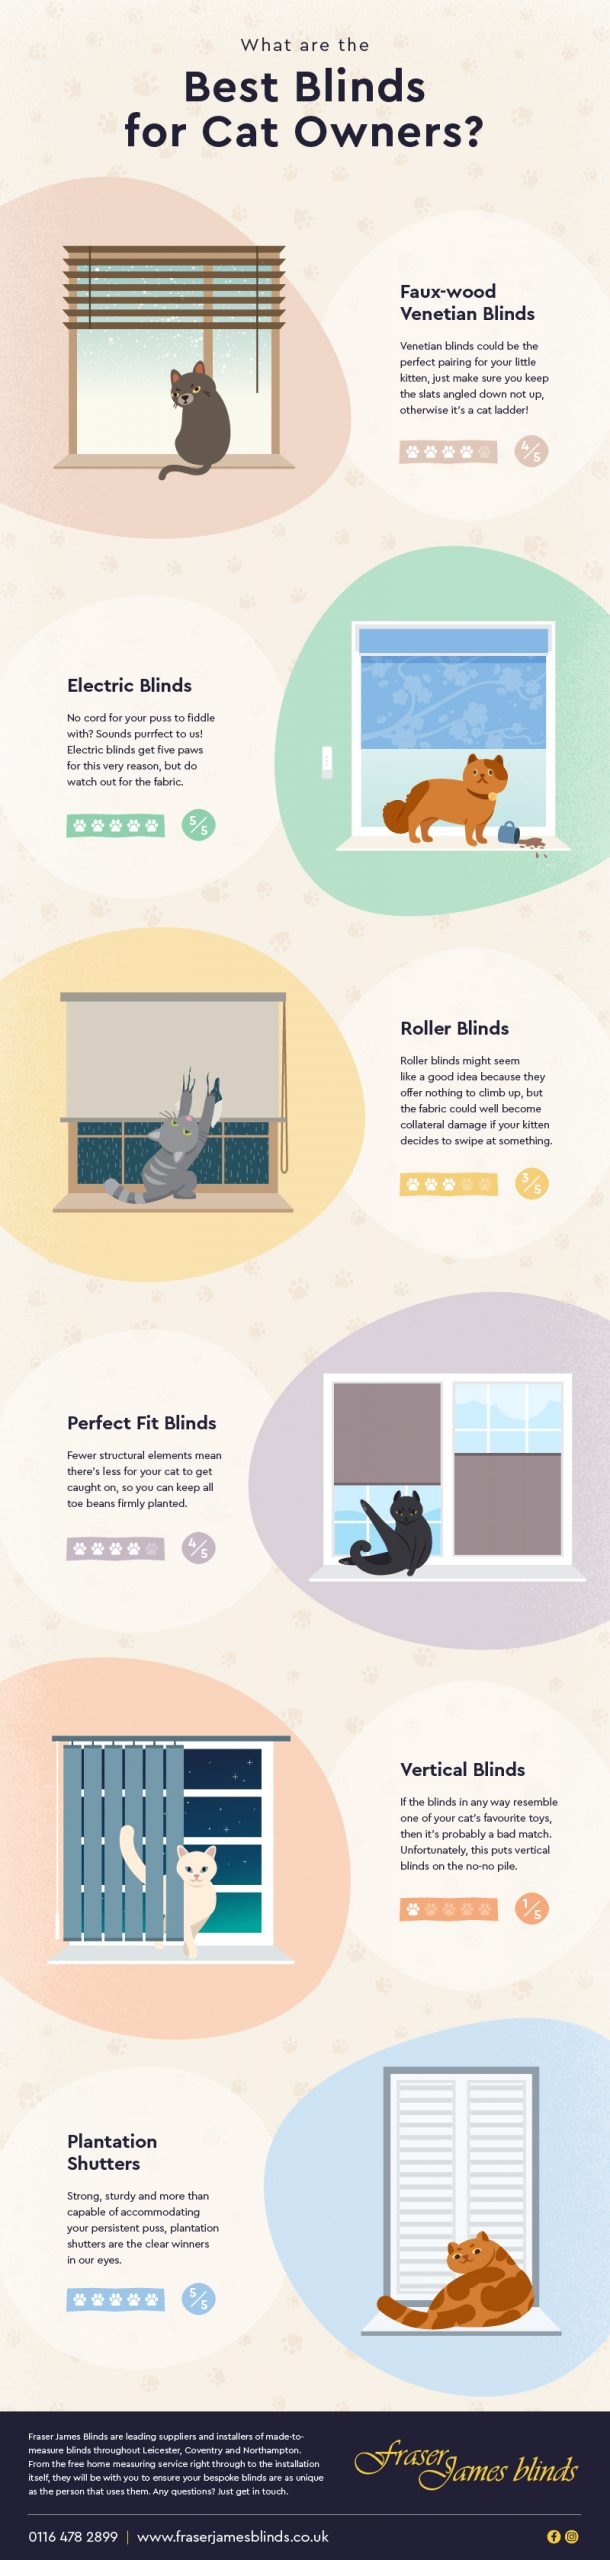 infographic best blinds for cats